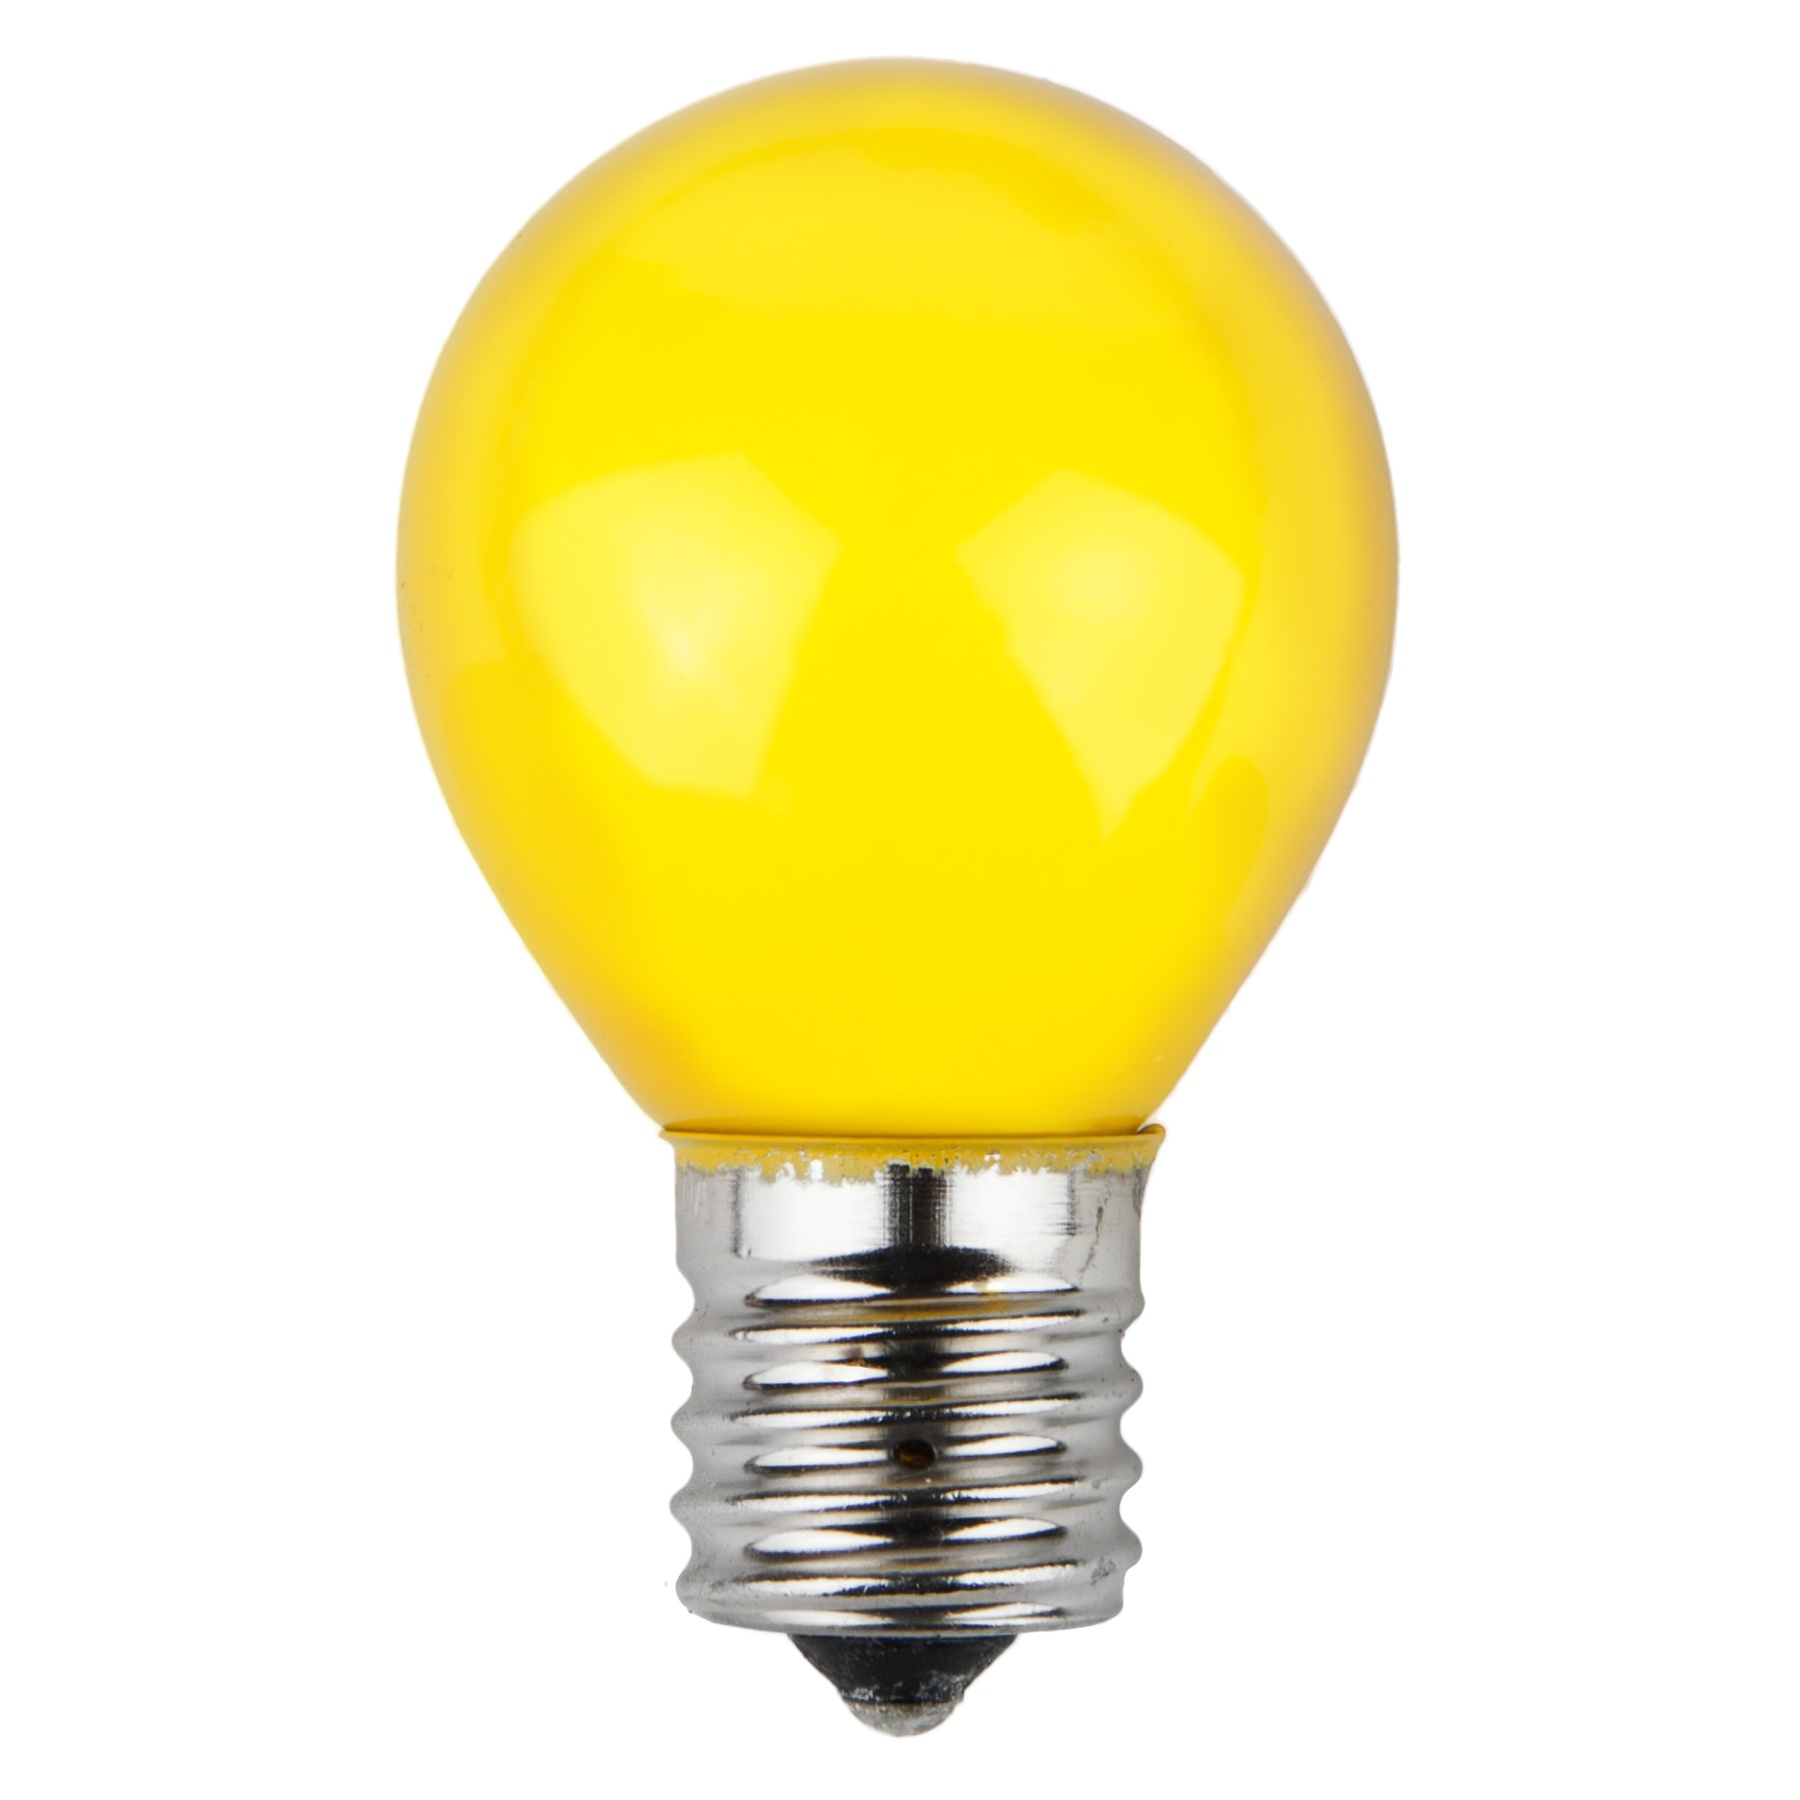 E17 Patio and Party Light Bulbs - S11 Opaque Yellow, 10 Watt Replacement Bulbs